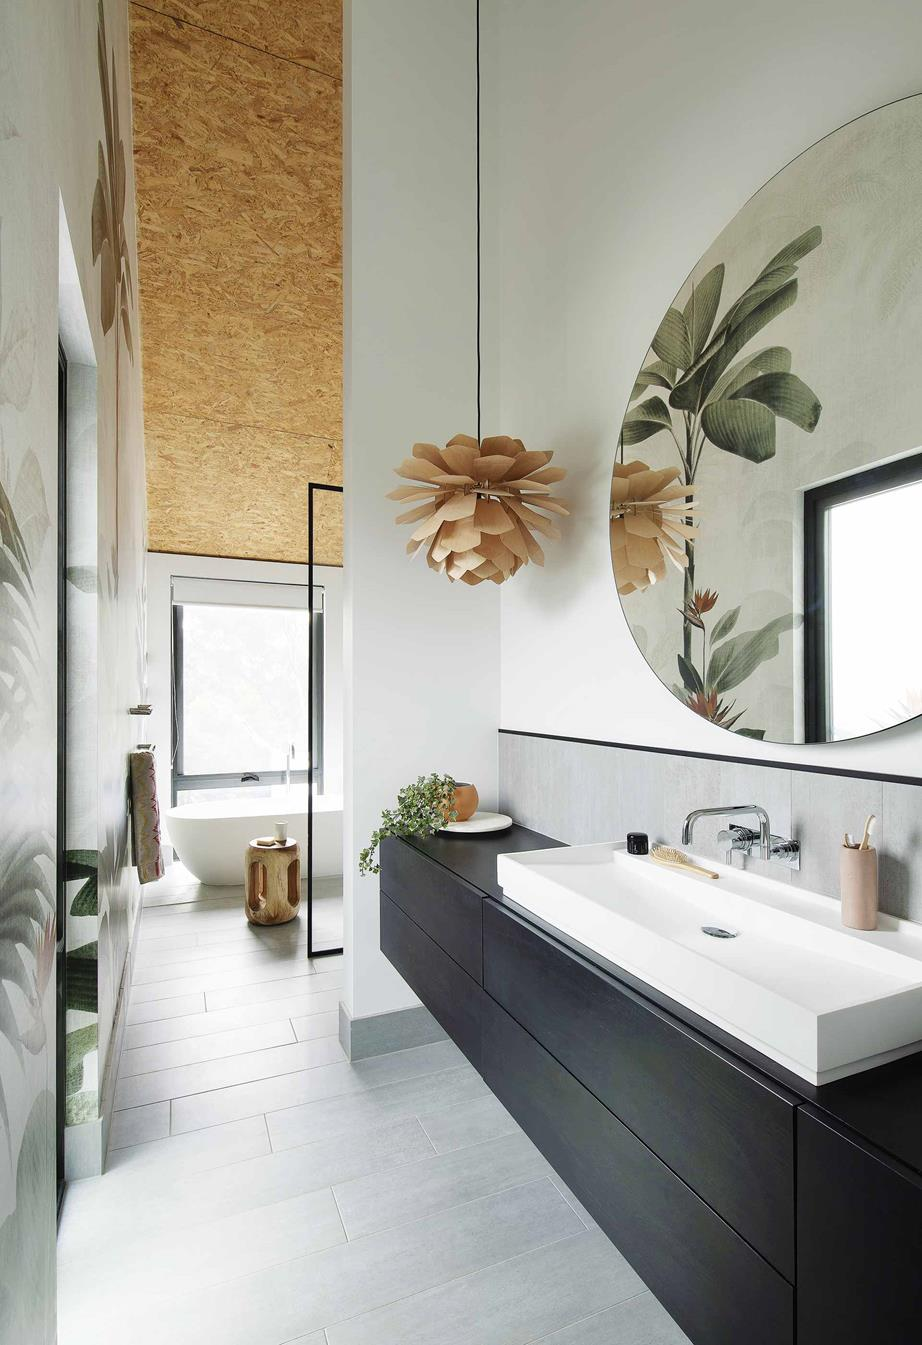 Ensuite  An oversized mirror from  The Block Shop  hangs above custom cabinetry imported from Poland and a basin from  Prodigg Bathrooms . Next to the Prodigg bath, a stool from  Empire Homewares  serves as a side table. The owners also imported the statement pendant light from Poland.